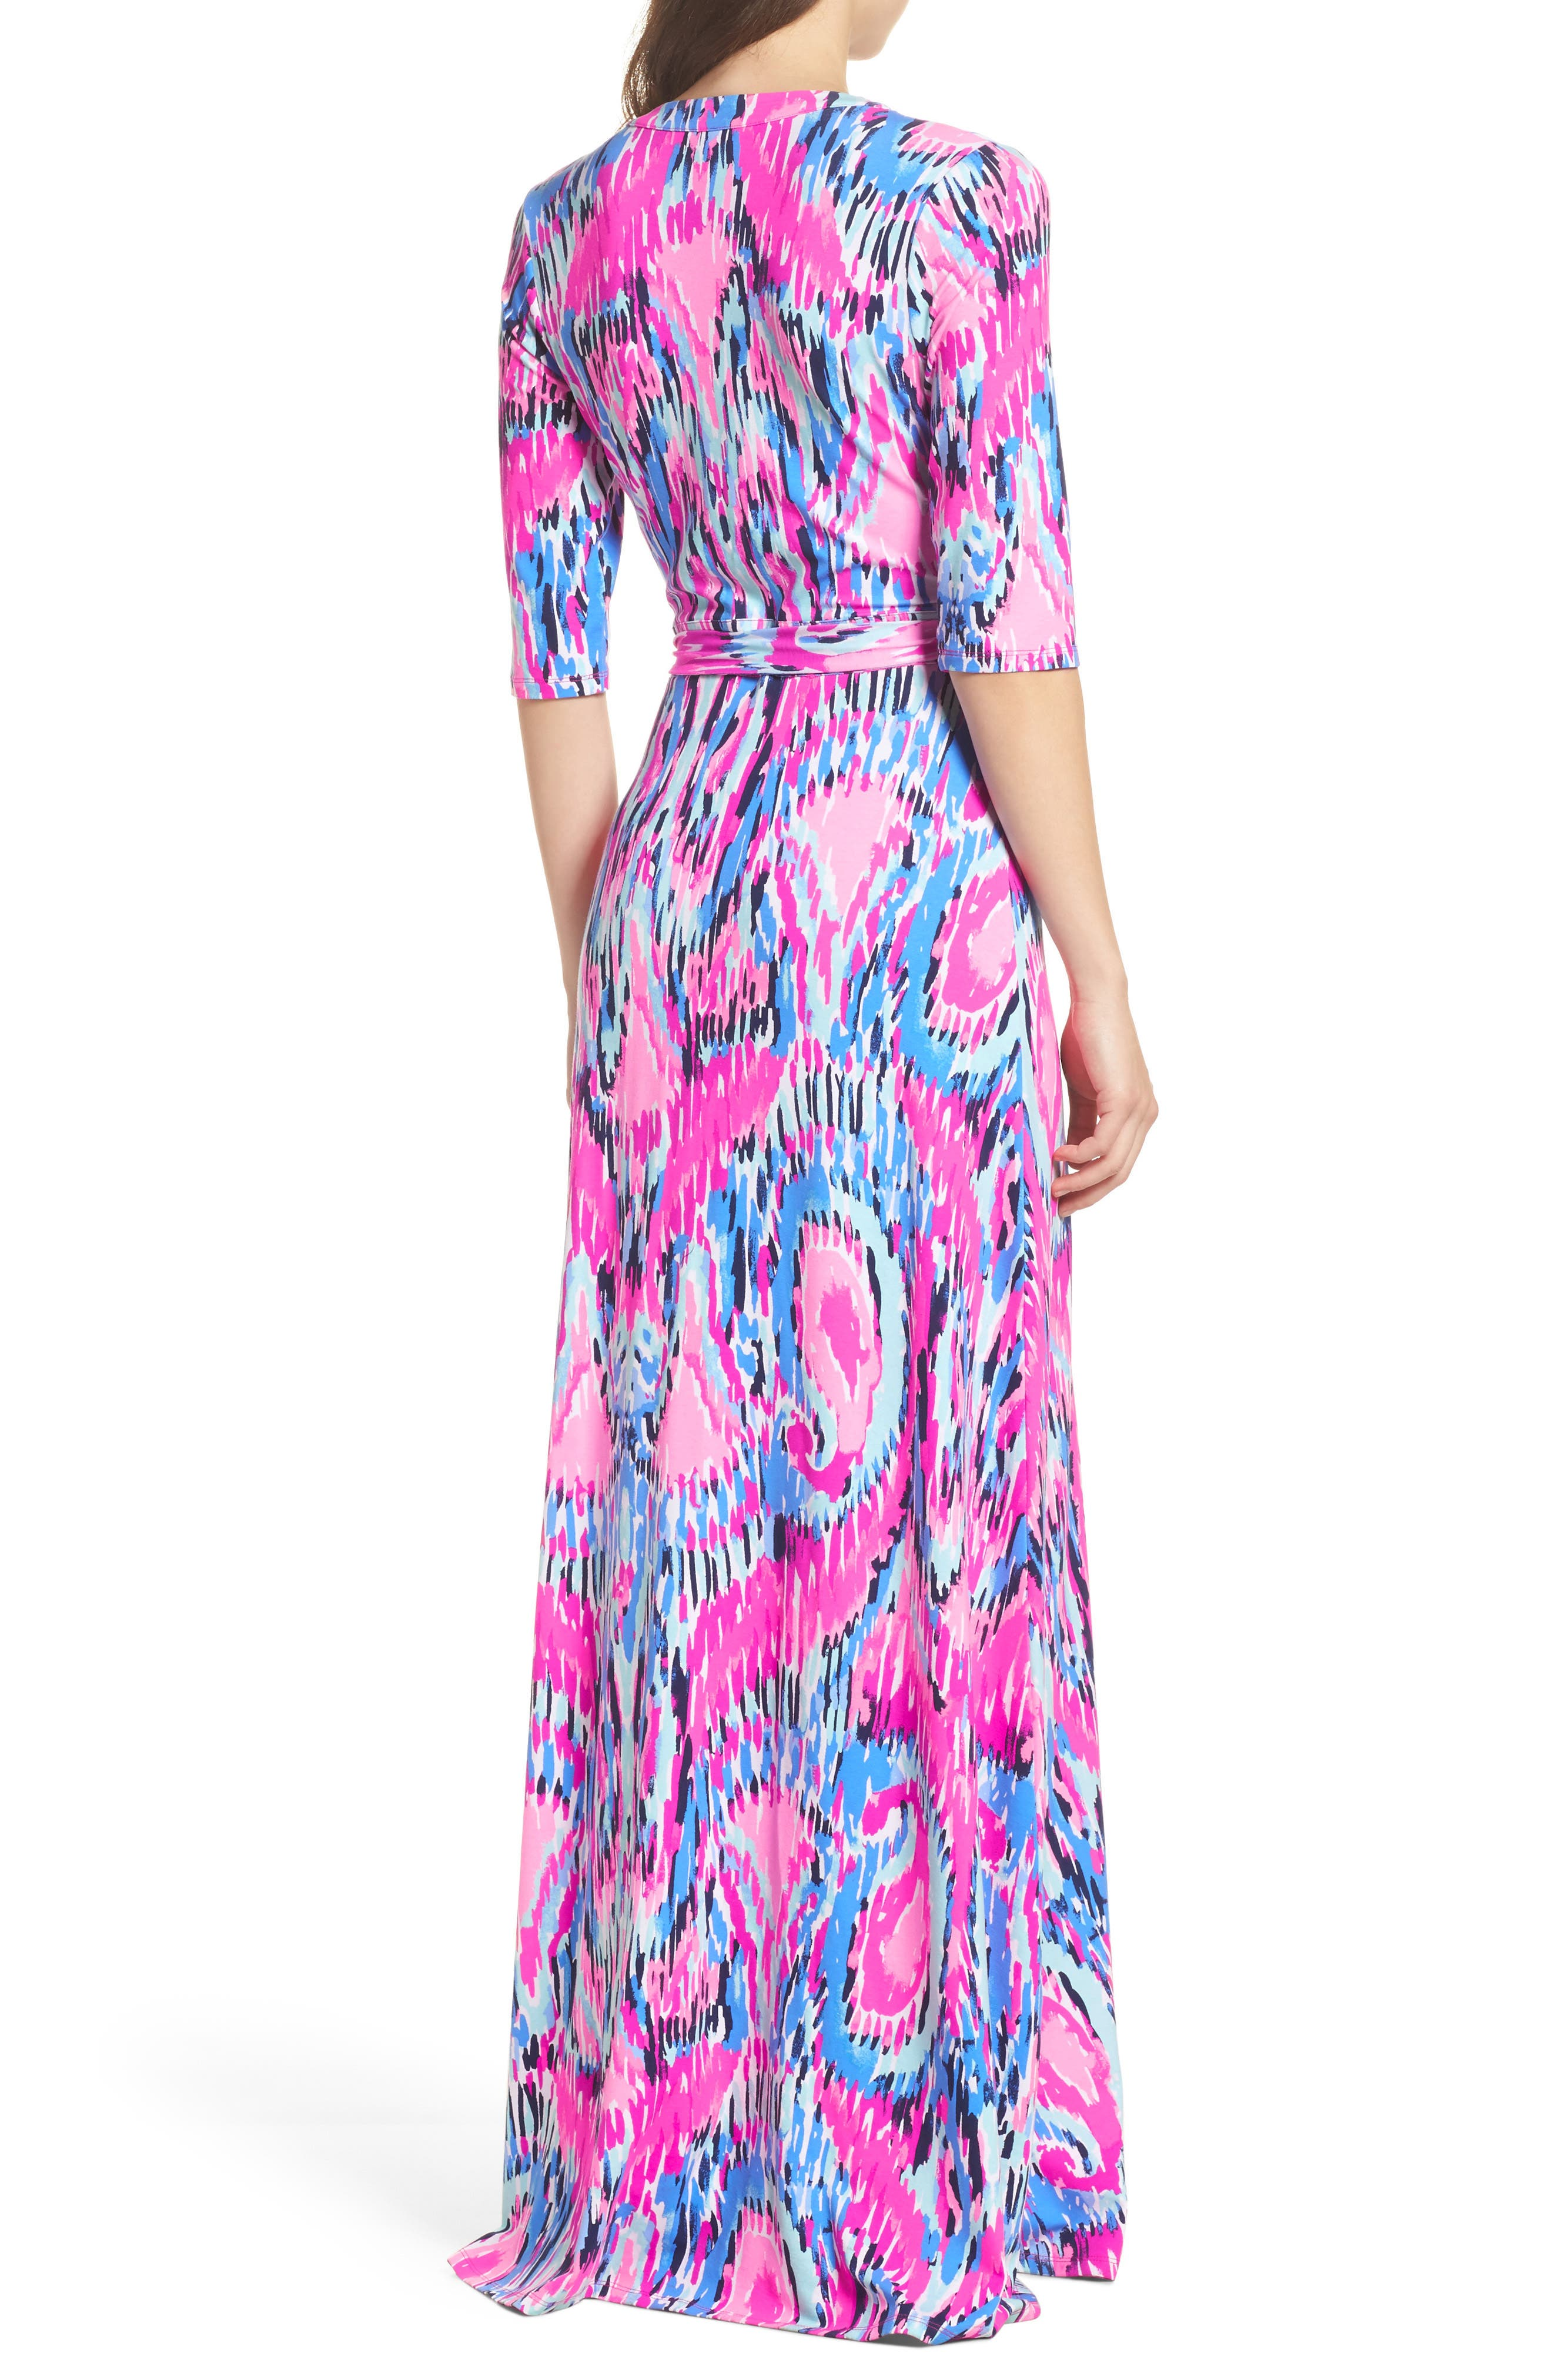 Marvista Wrap Maxi Dress,                             Alternate thumbnail 2, color,                             650